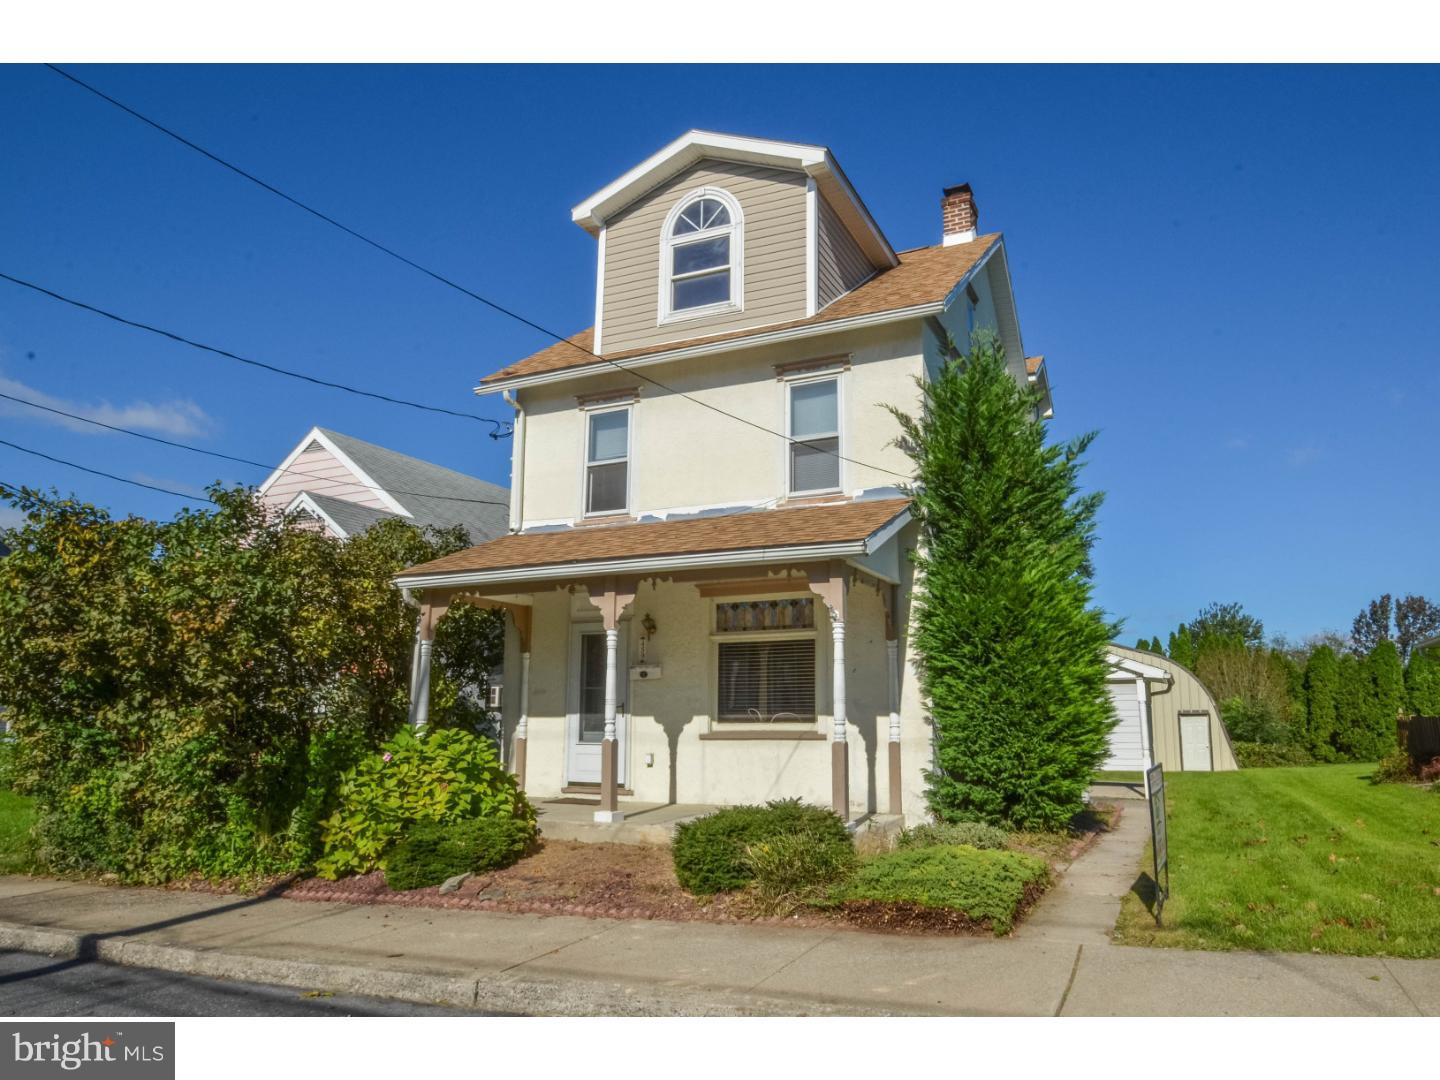 459 E 12TH STREET, NORTHAMPTON, PA 18067